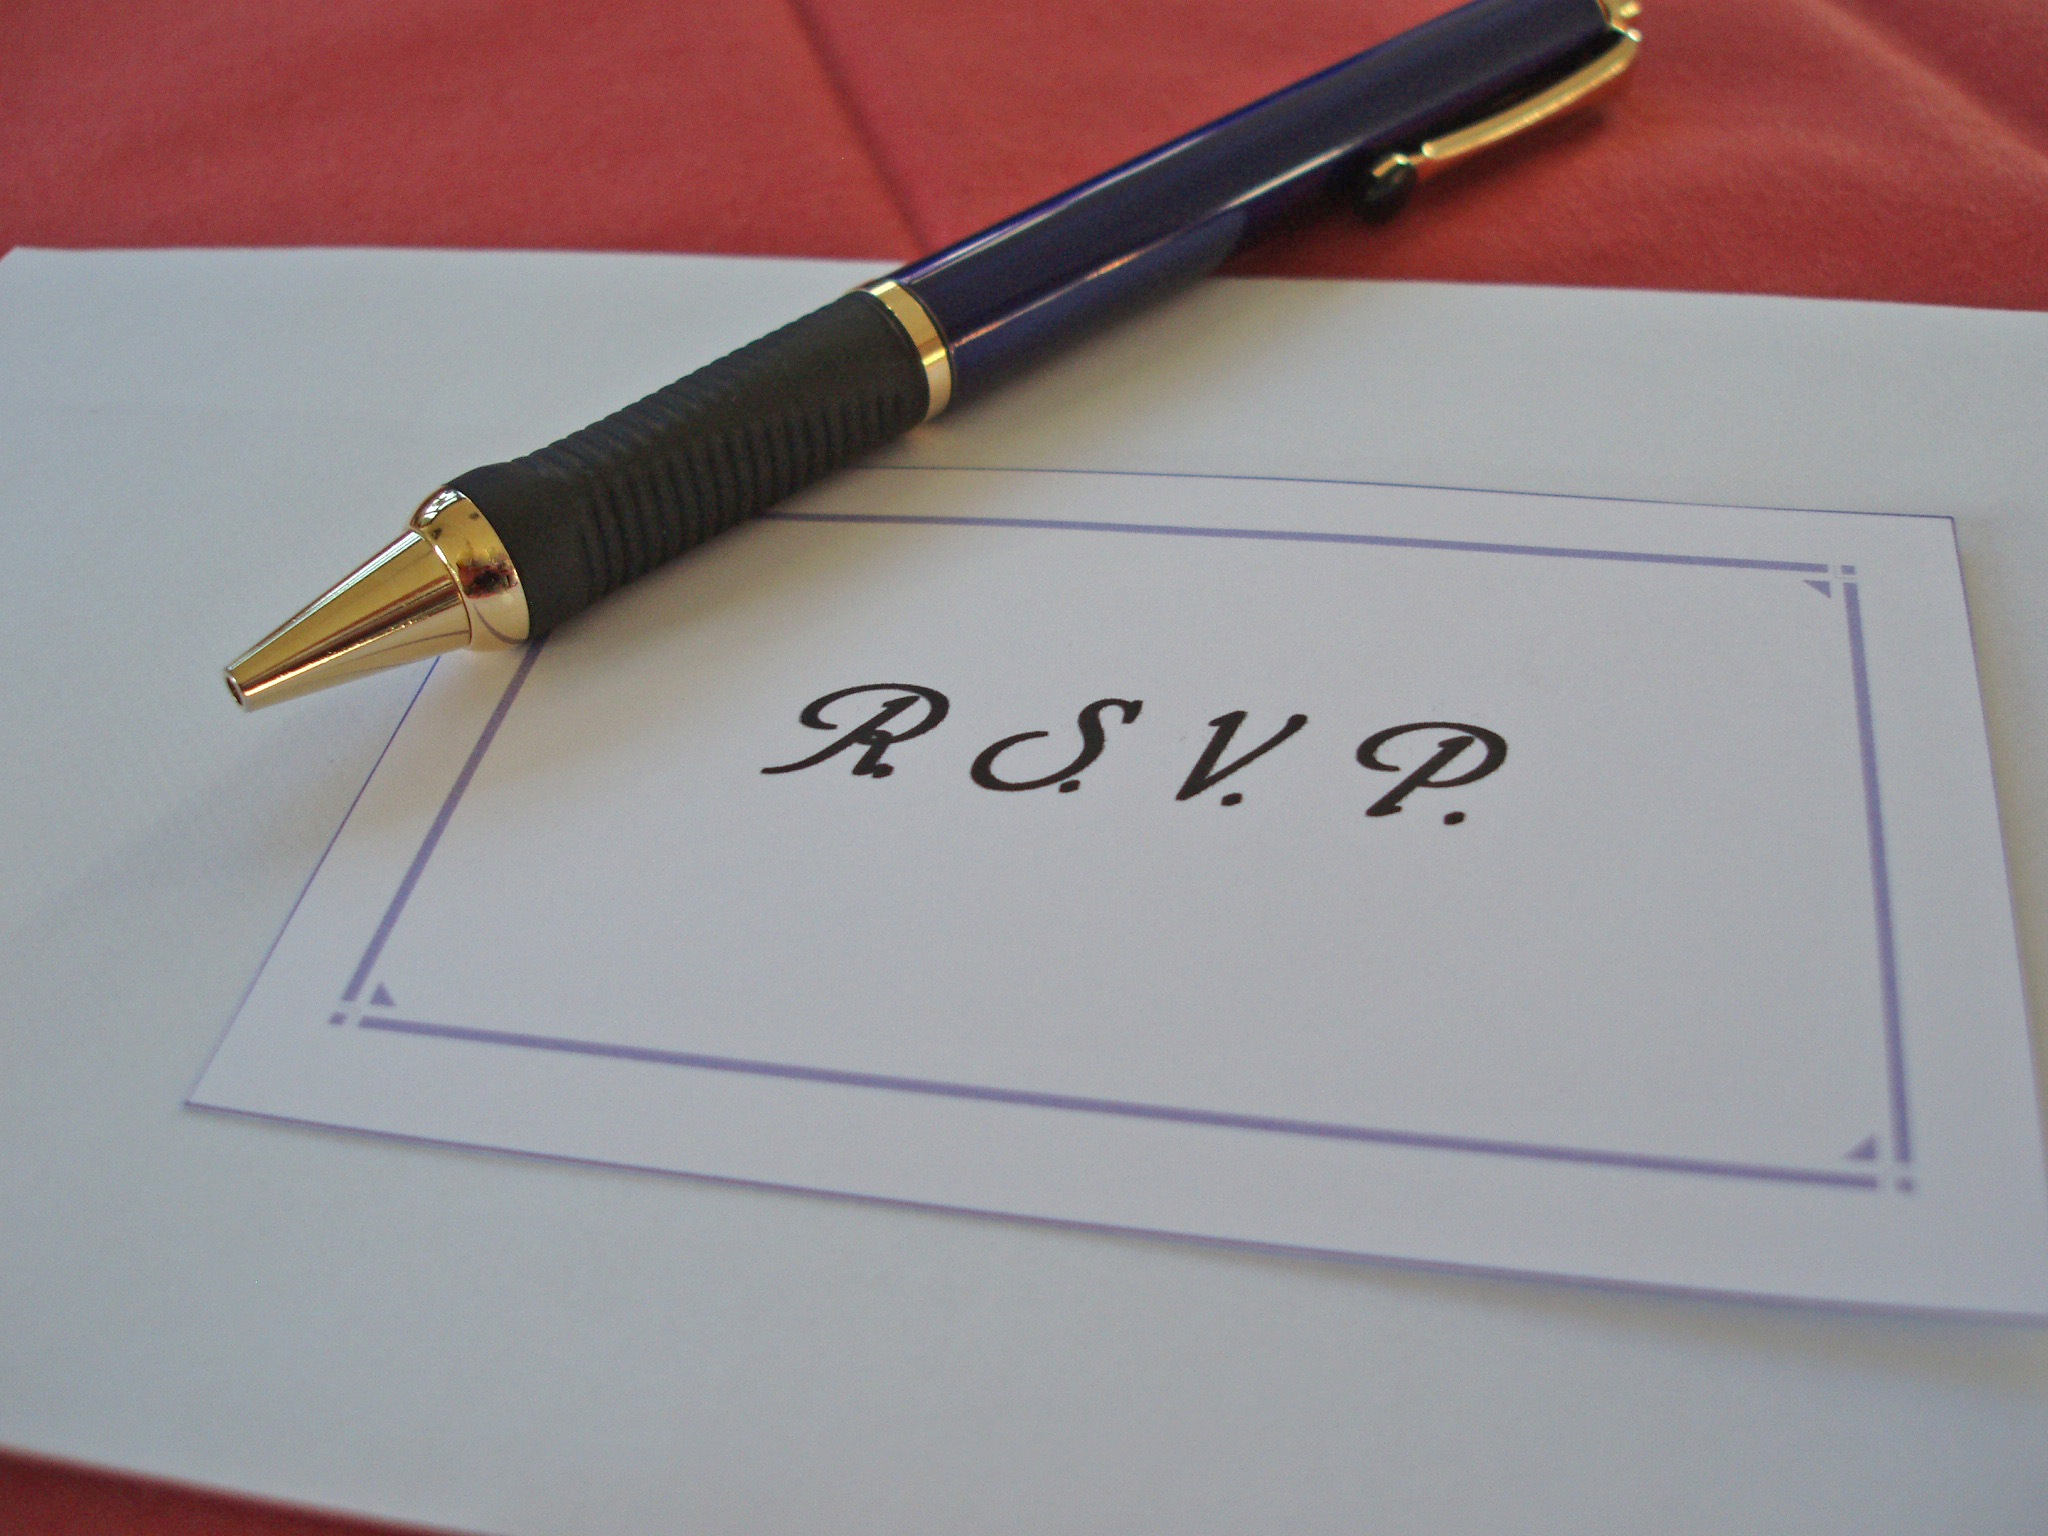 What r s v p stands for for Rsvp stand for on an invitation